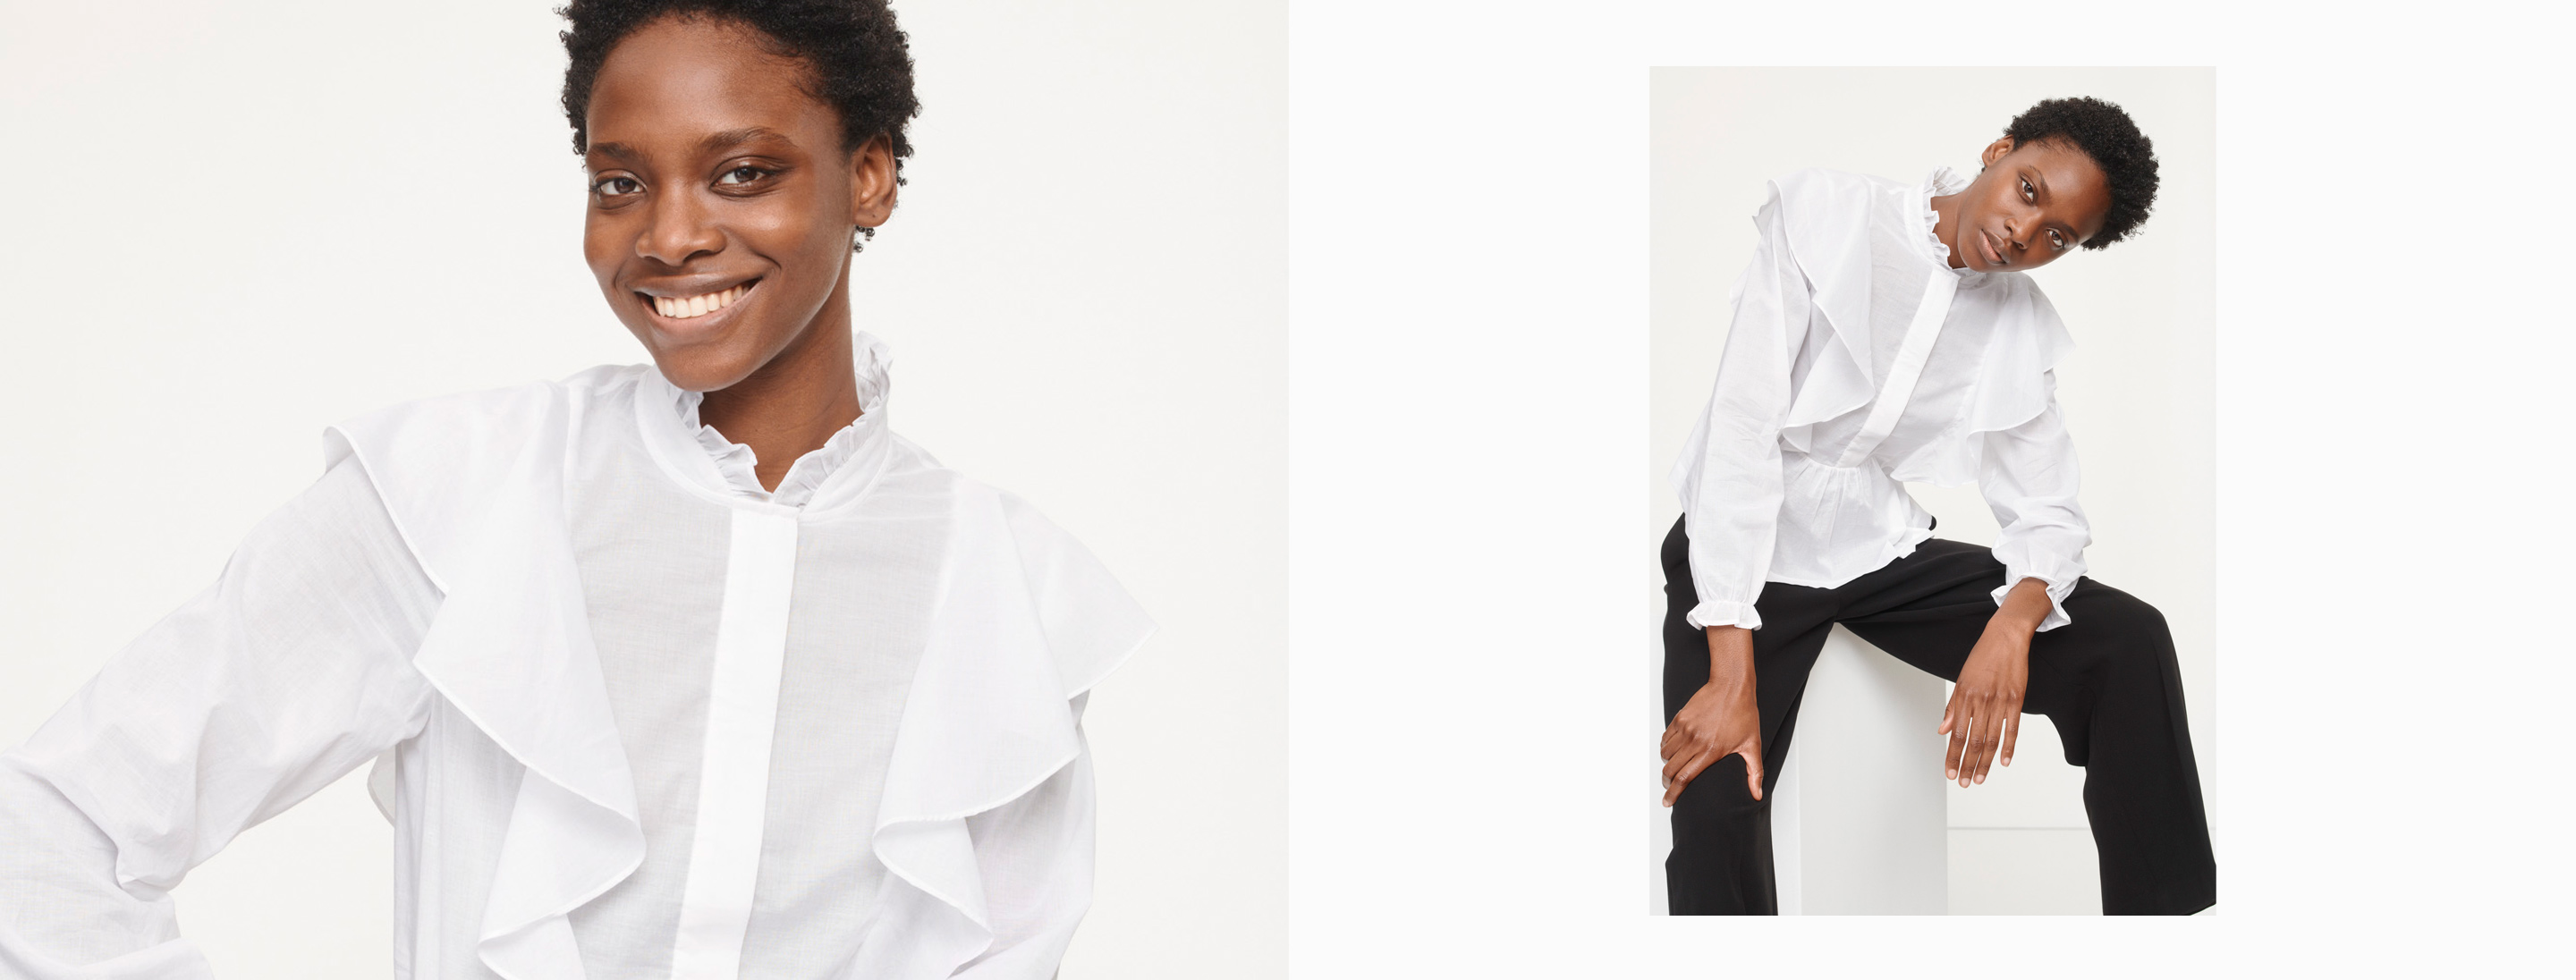 Woman Shirts & Tops Category